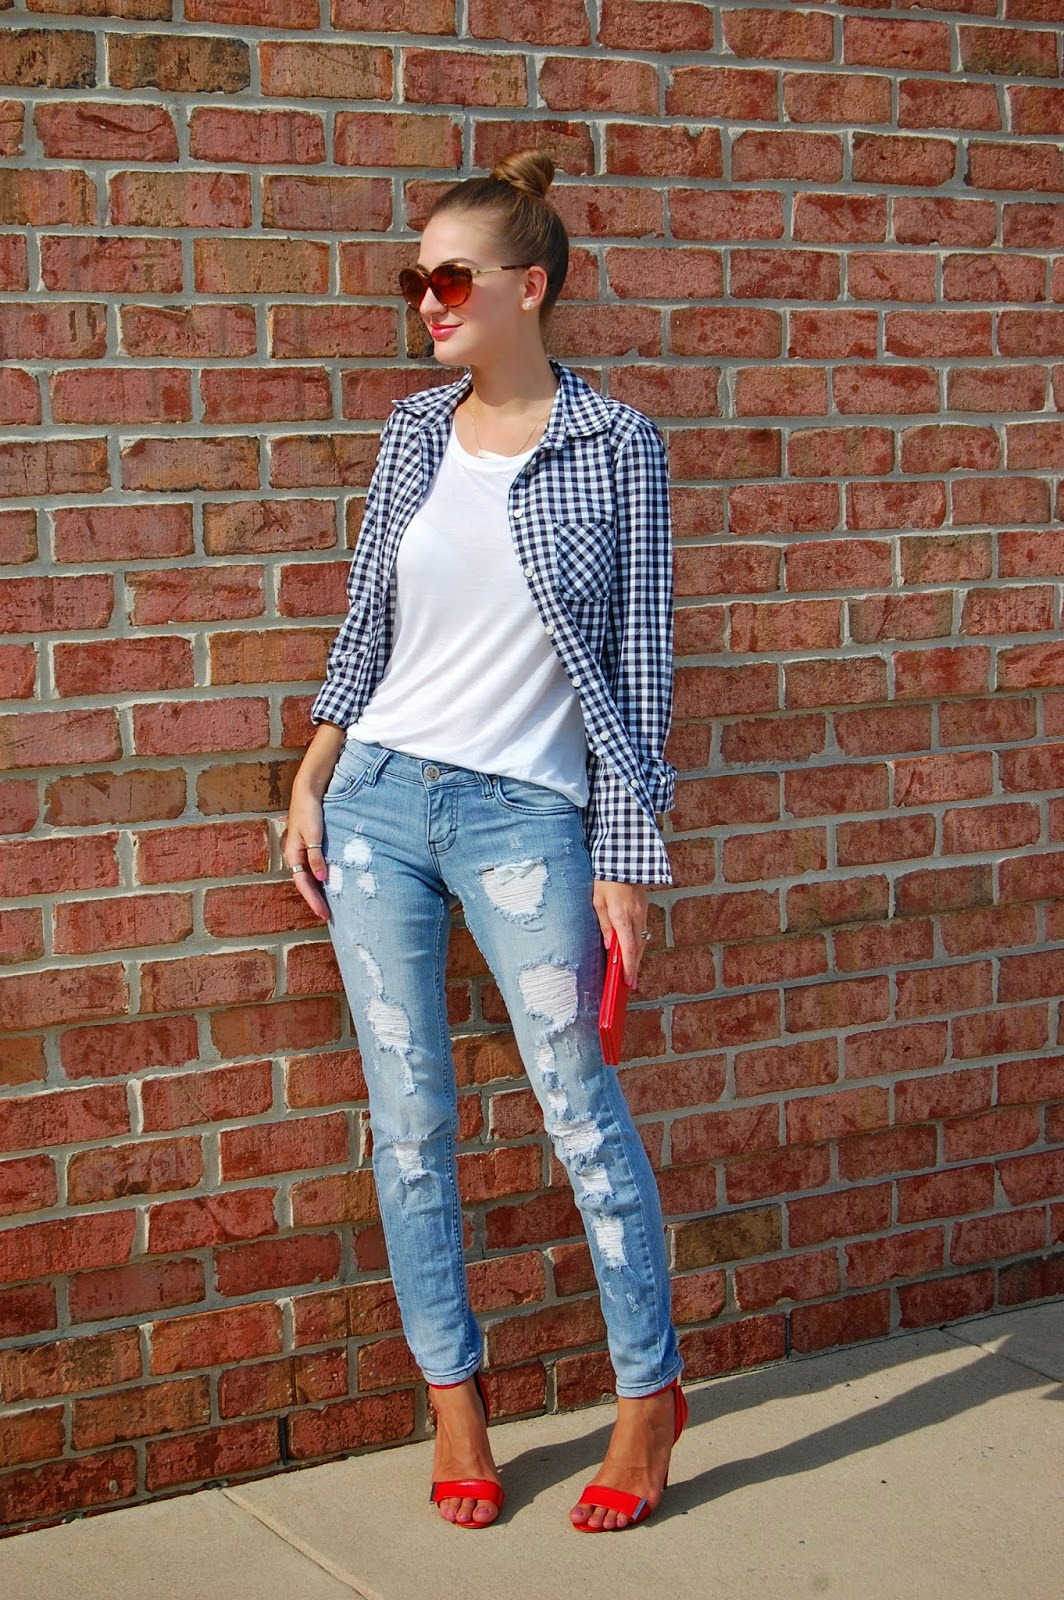 90's inspired look. Shirt tied around waist. Navy Gingham Shirt, Distressed Boyfriend Jeans, Heels